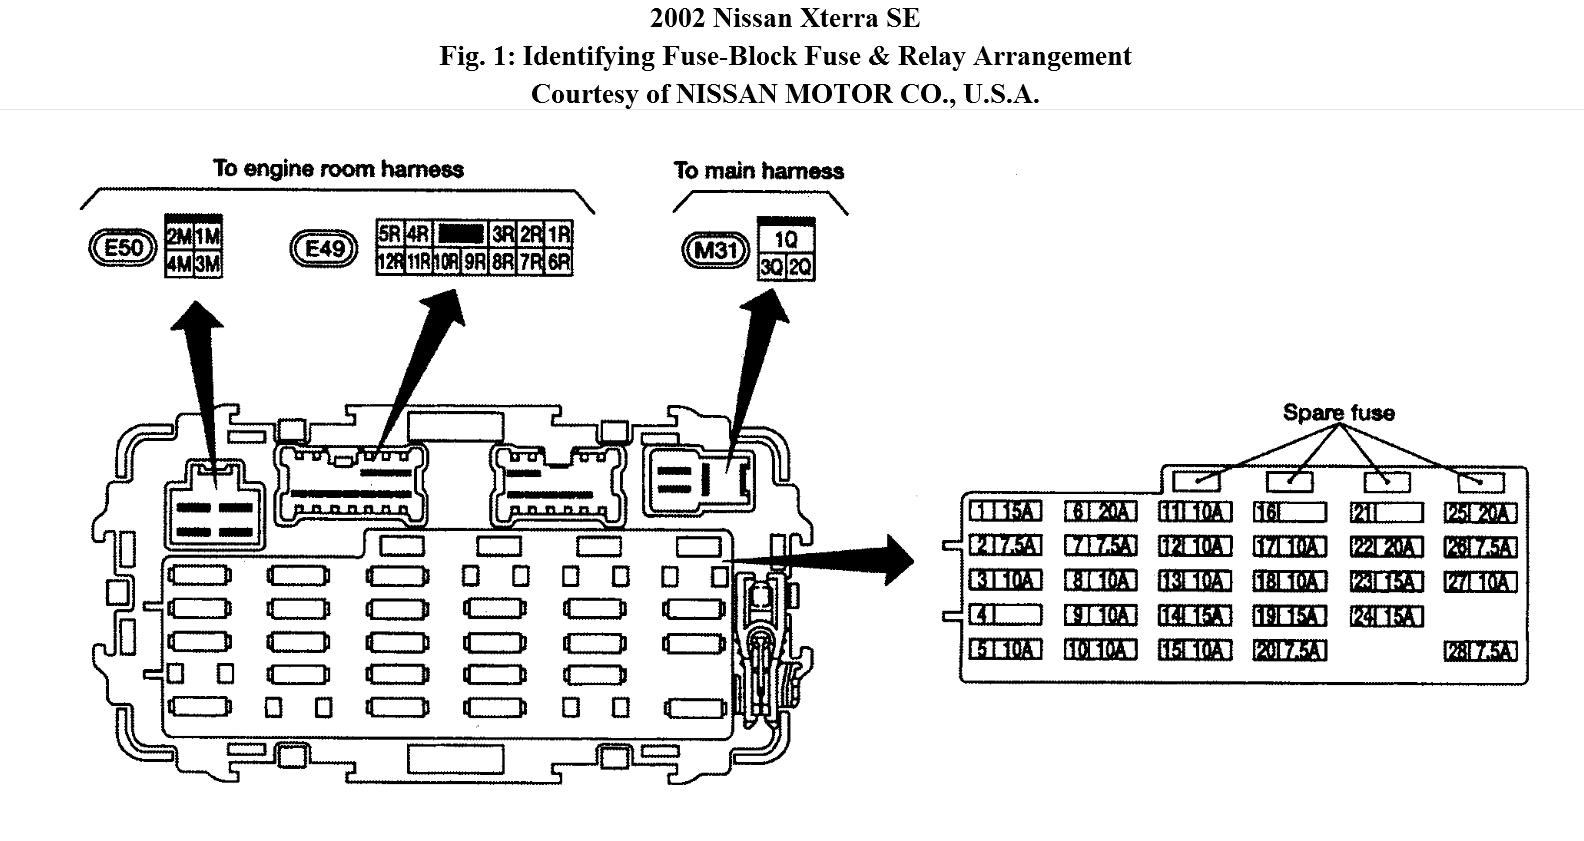 Fuse Box Nissan Xterra 2002 - Do you want to download wiring ...  Nissan Xterra Wiring Diagram on